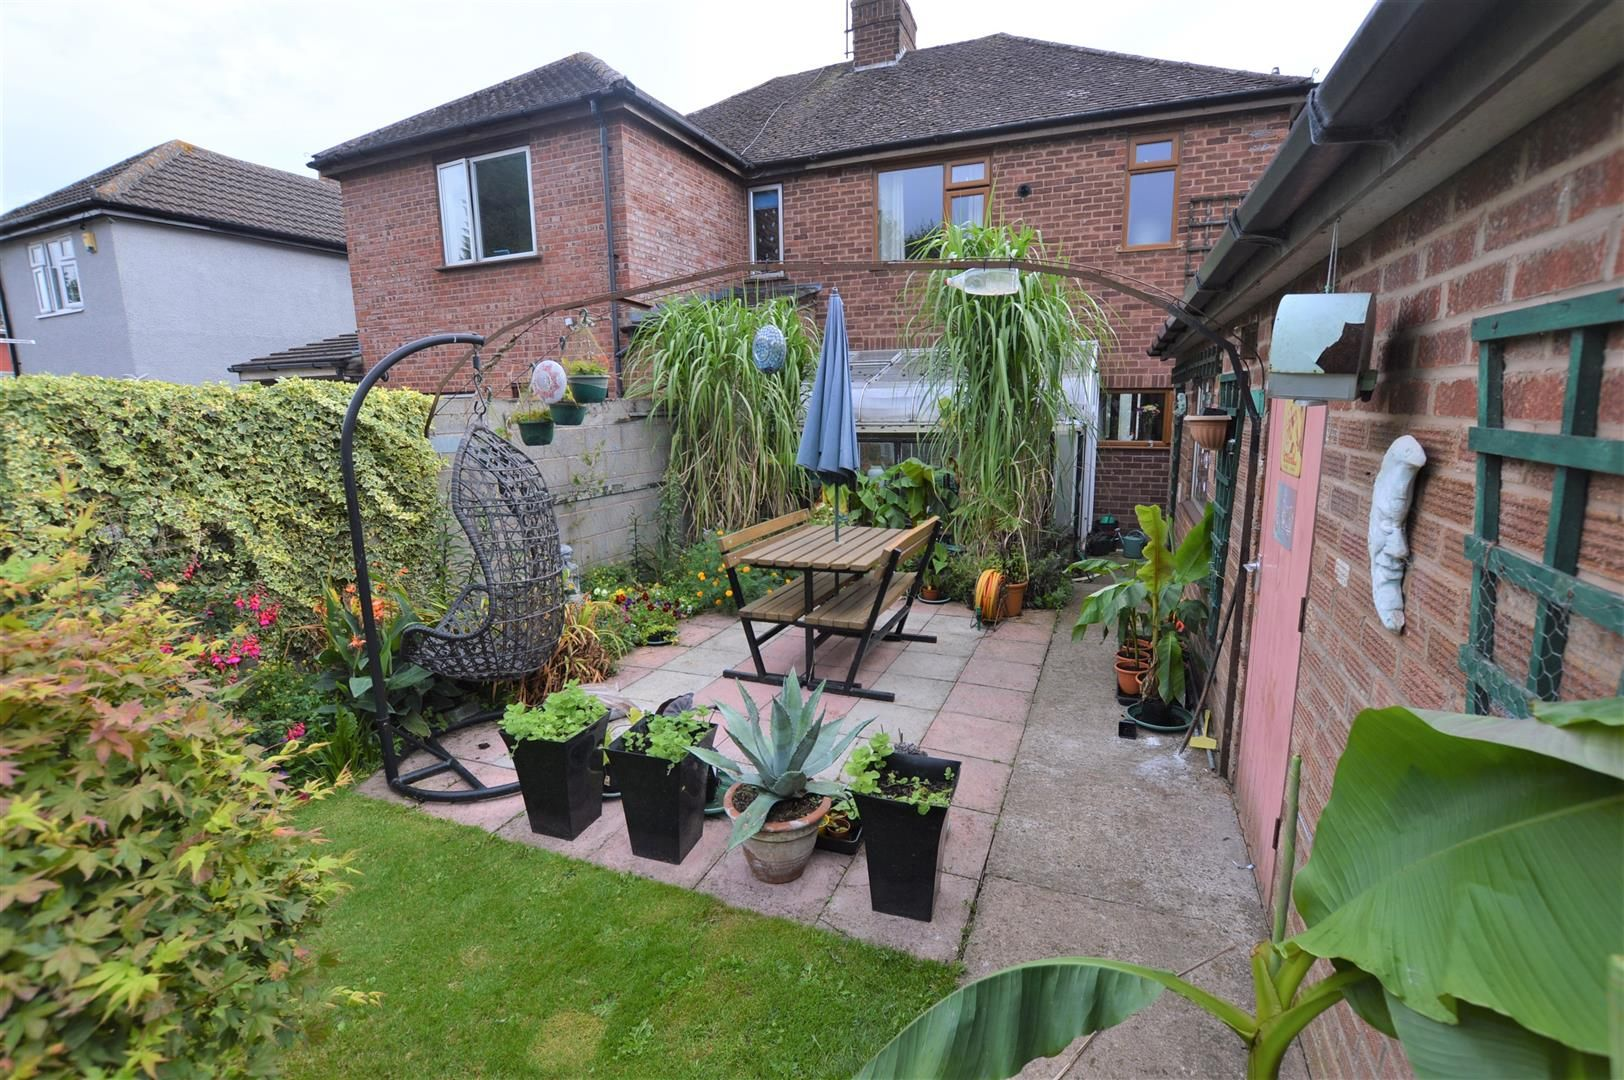 3 bed semi-detached for sale in Hereford 13